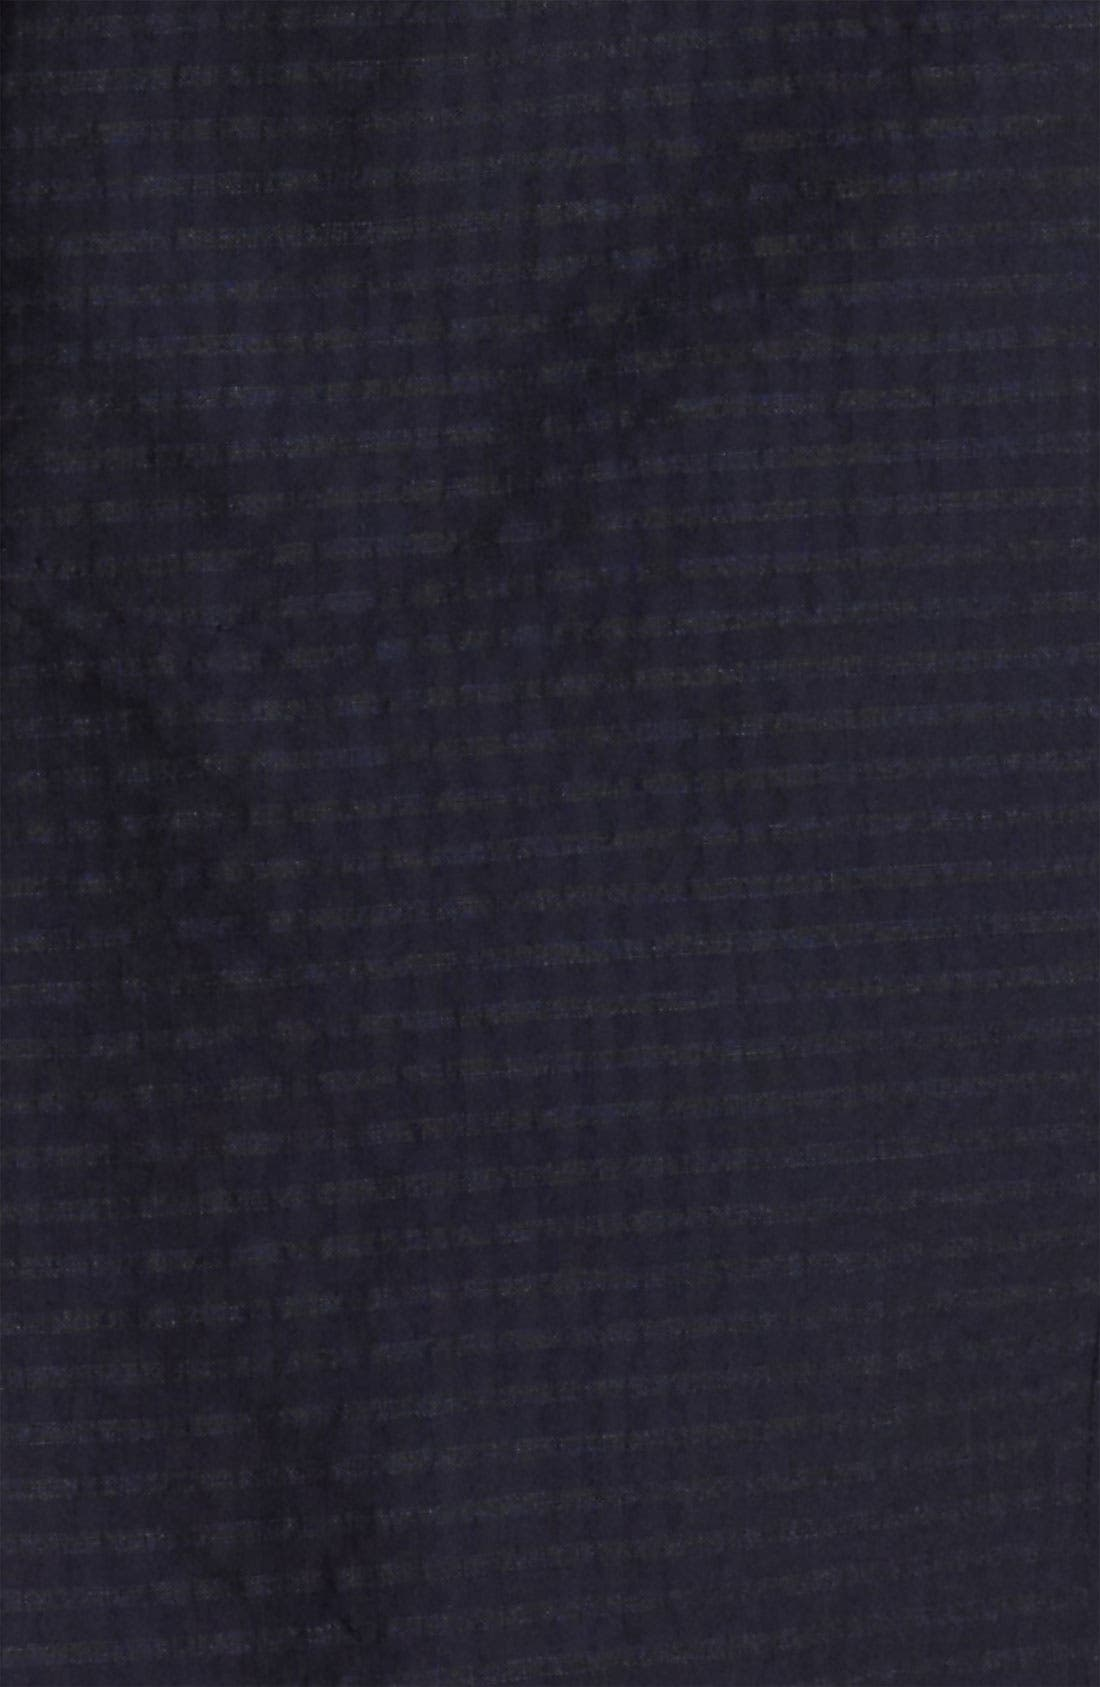 Alternate Image 3  - Z Zegna Trim Fit Seersucker Sportcoat